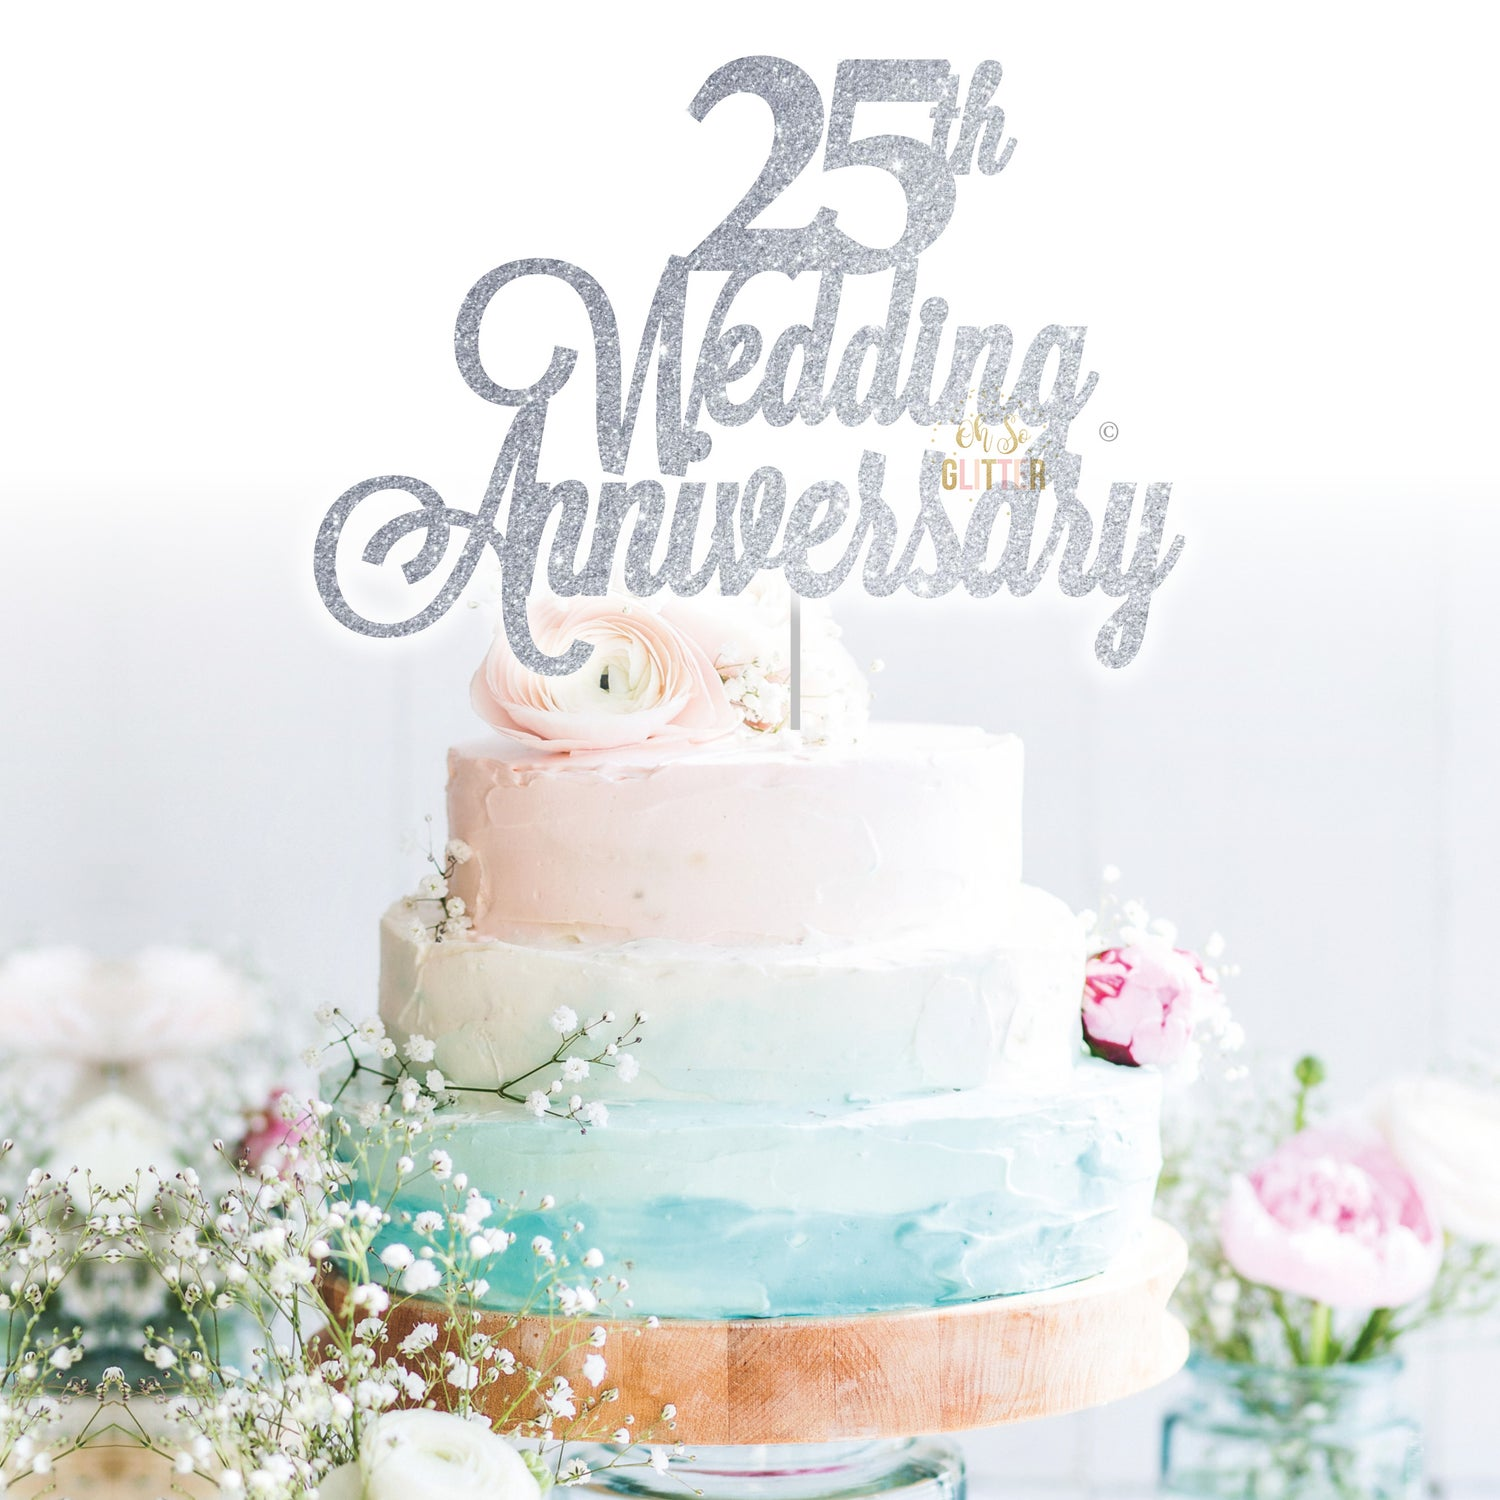 25th Wedding Anniversary cake topper | Oh So Glitter